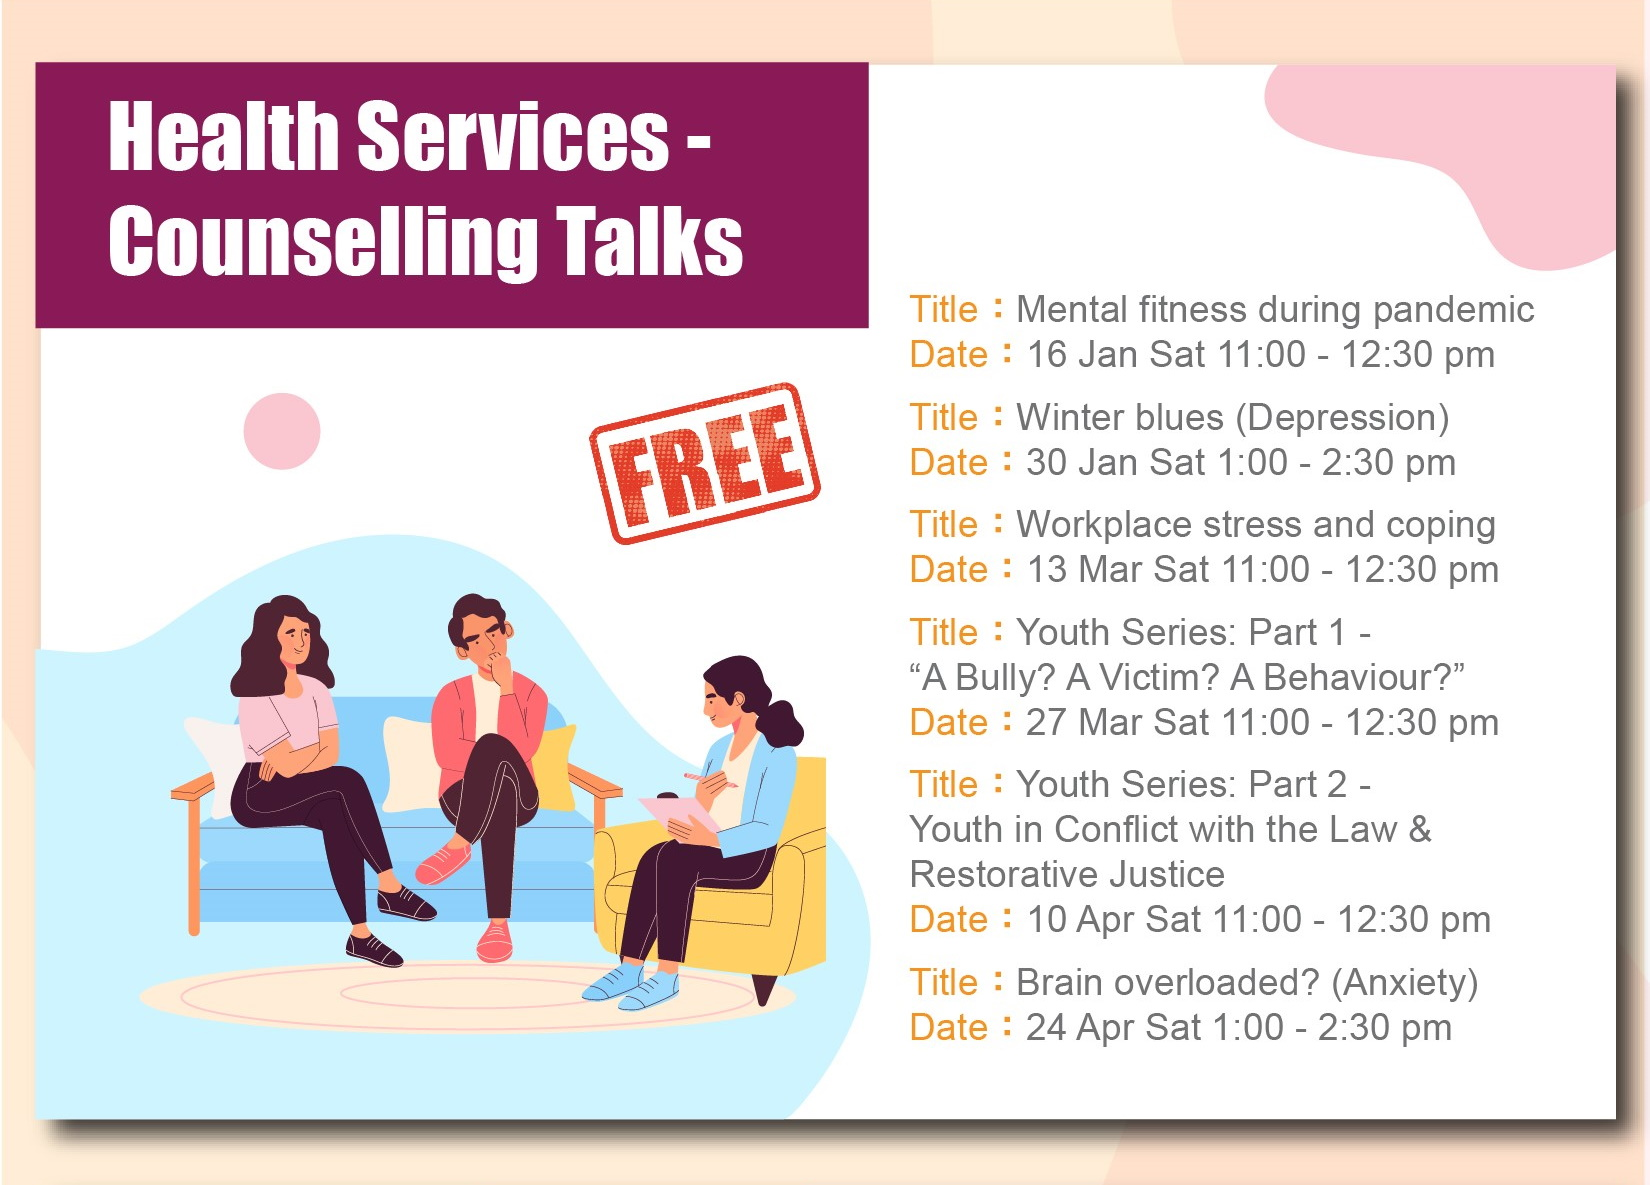 health services counselling talks for January to April 2021